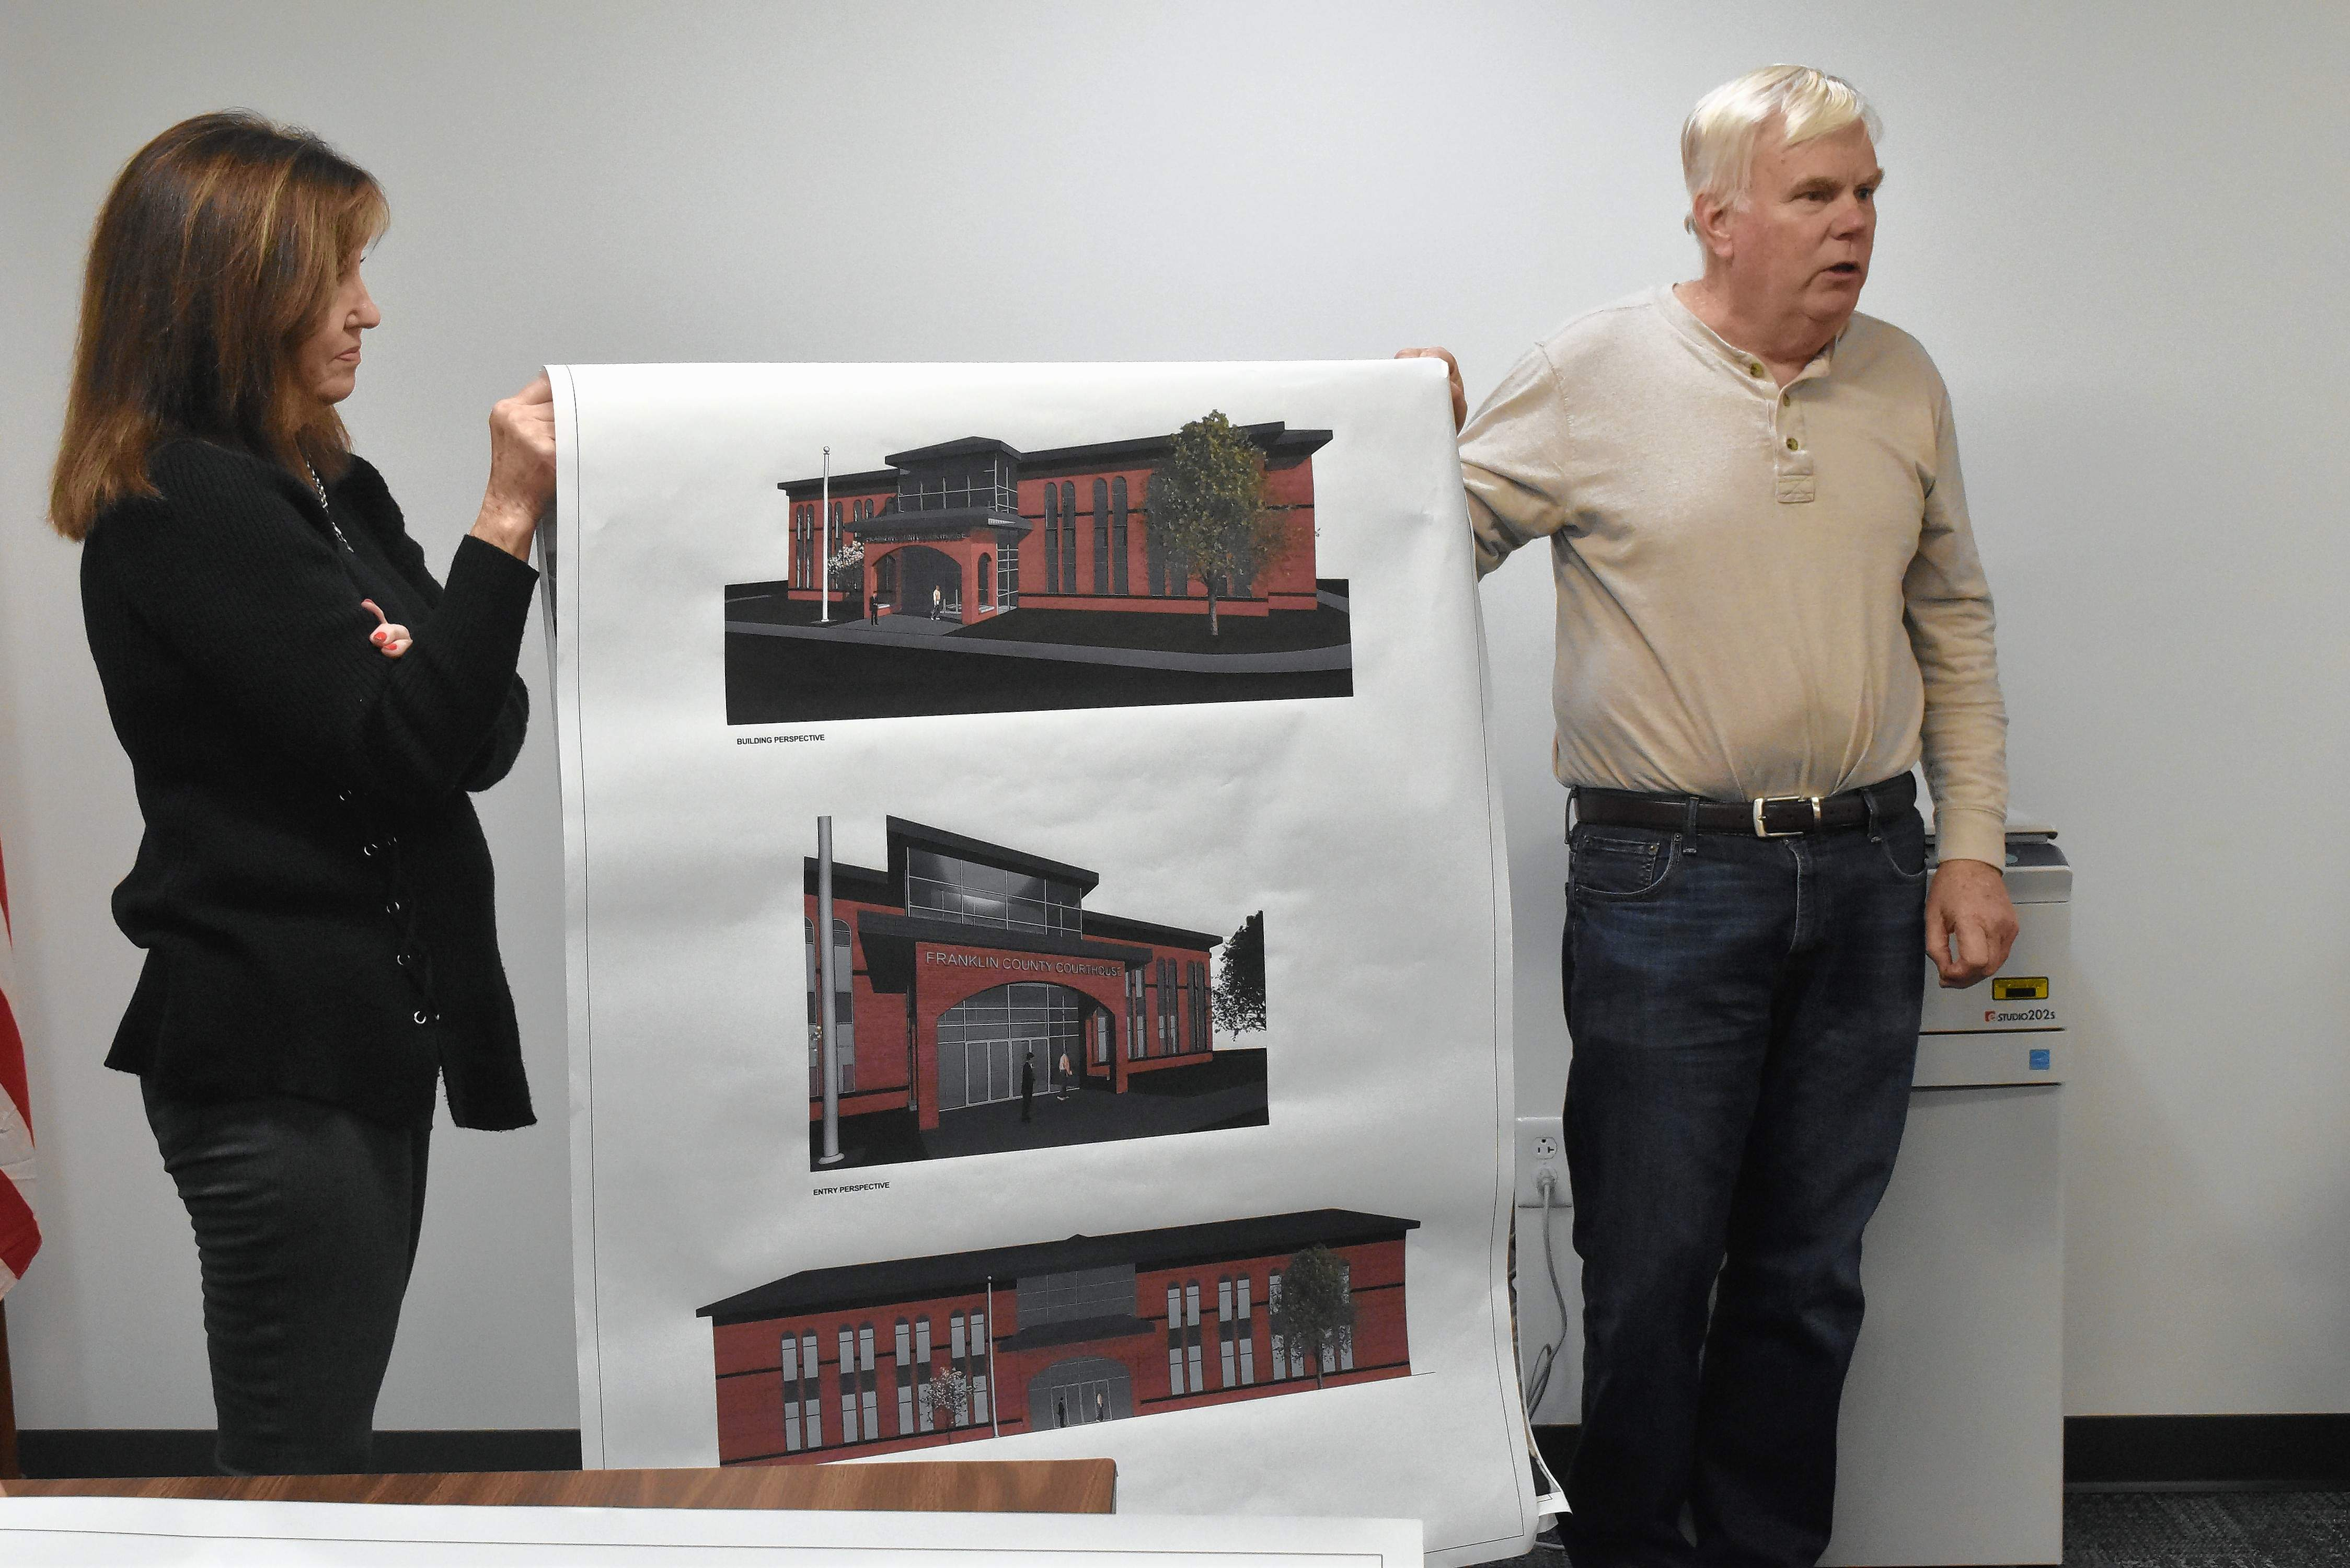 Franklin County Chairman Randall Crocker, right, and administrative assistant Gayla (Sink) Prather show an artist's rendering of what a new Franklin County Courthouse could look like. County officials are proposal to tear down the current one and build a new structure on the same property.